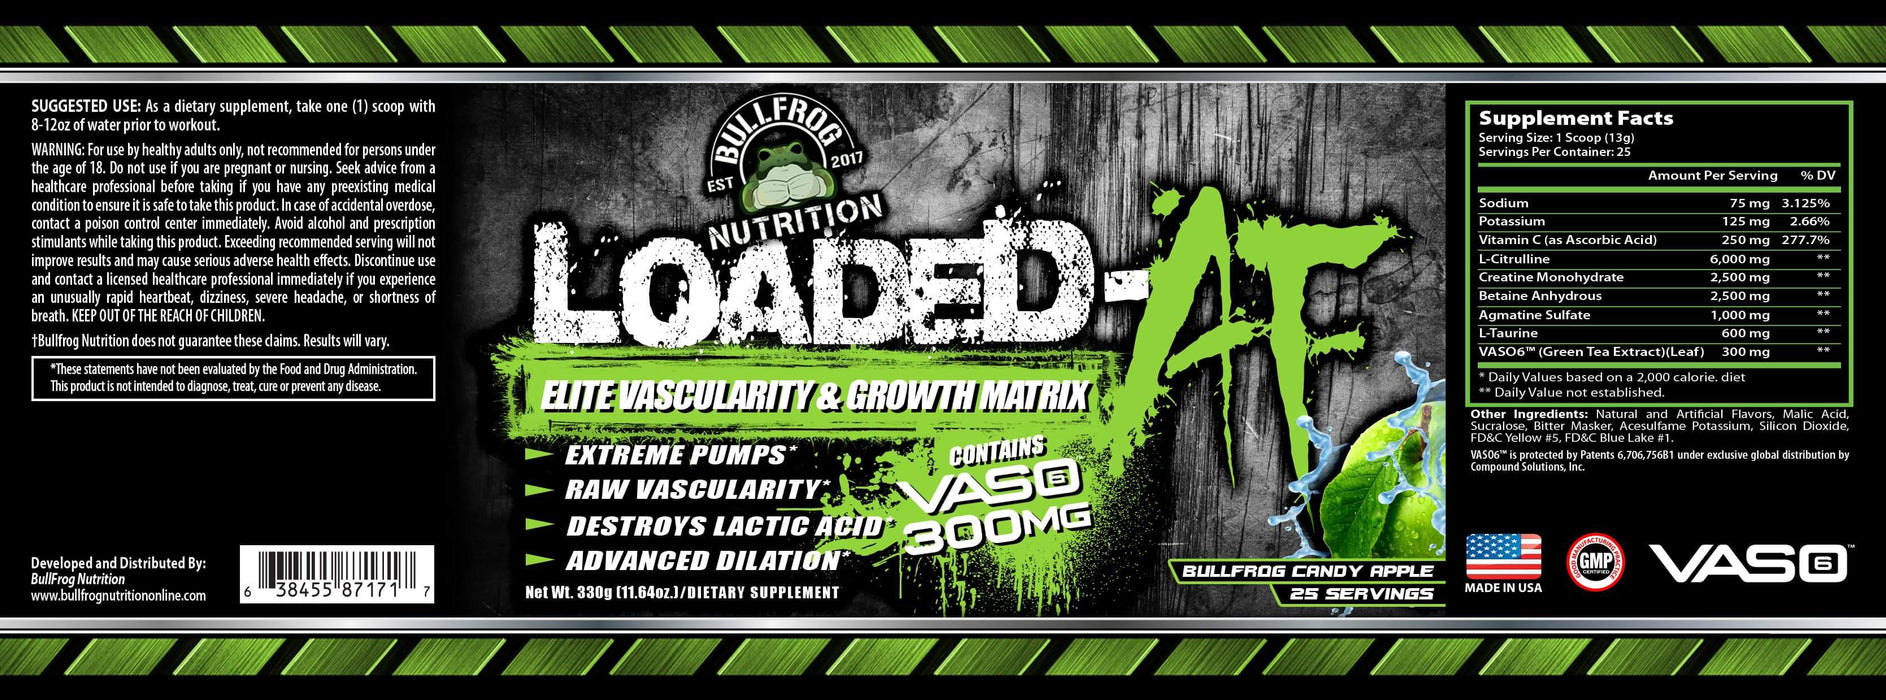 Bullfrog Exclusive Loaded-AF Stimulant Free Pre-workout